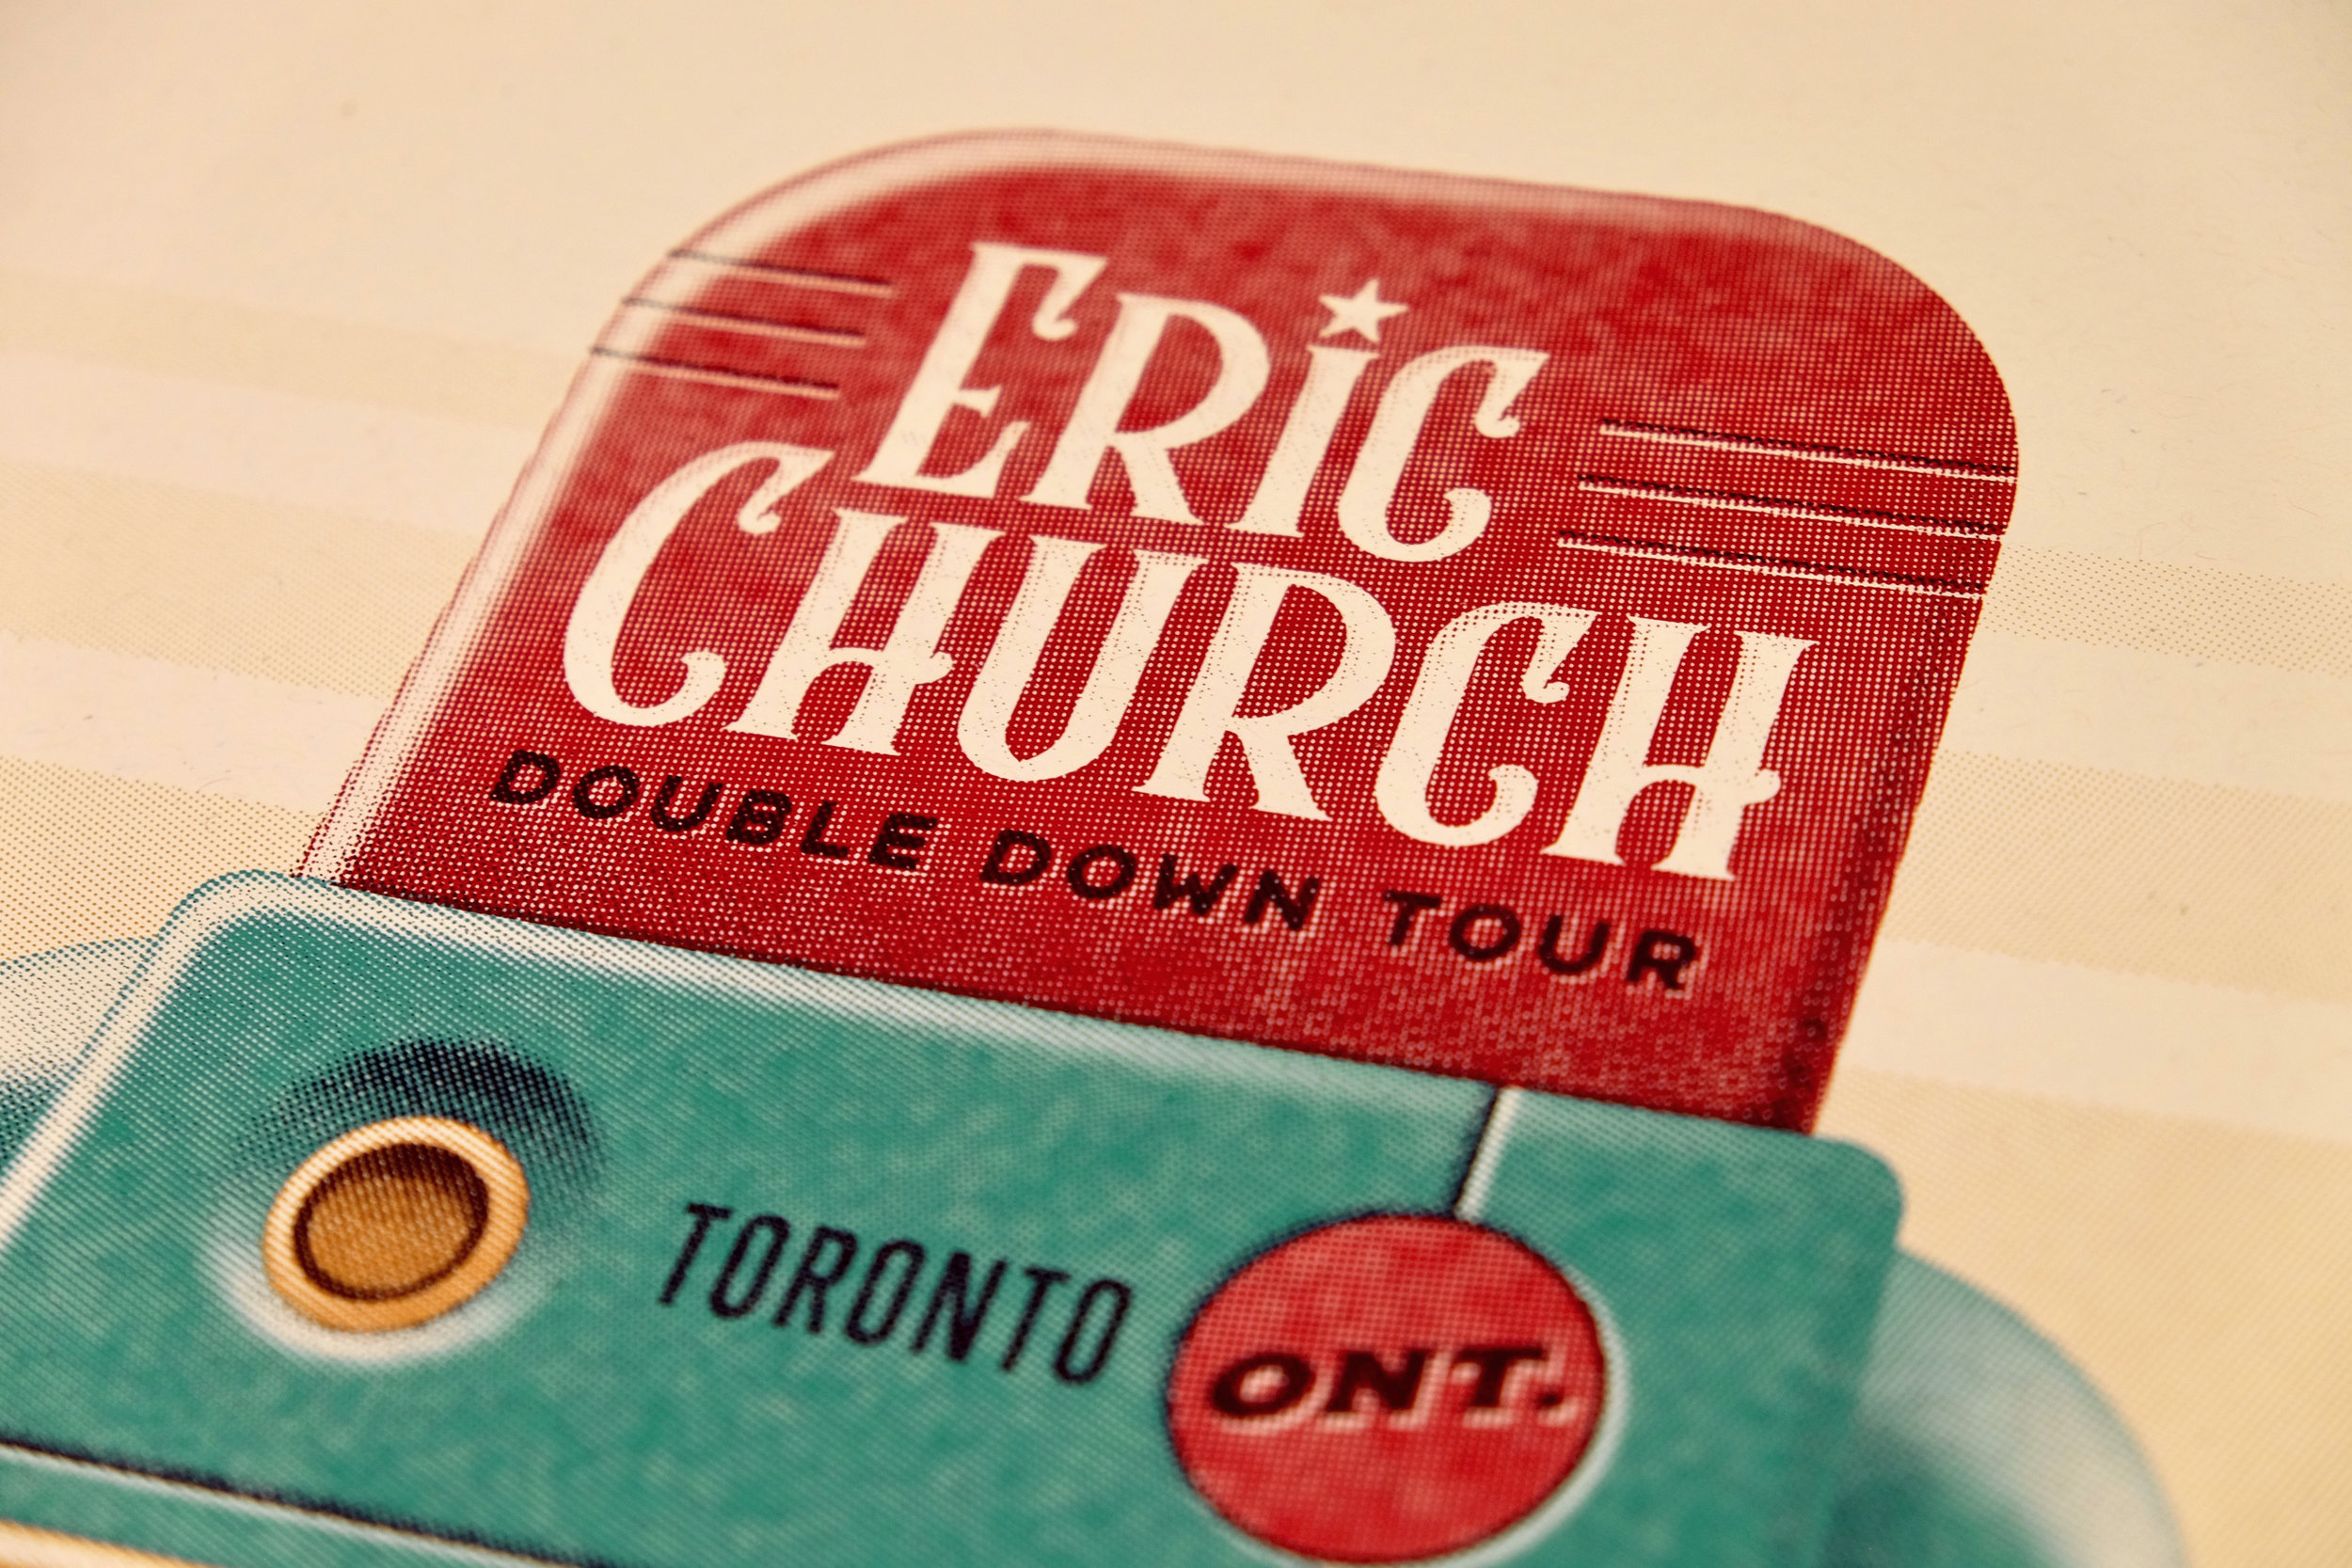 eric_church_pic_4.jpg